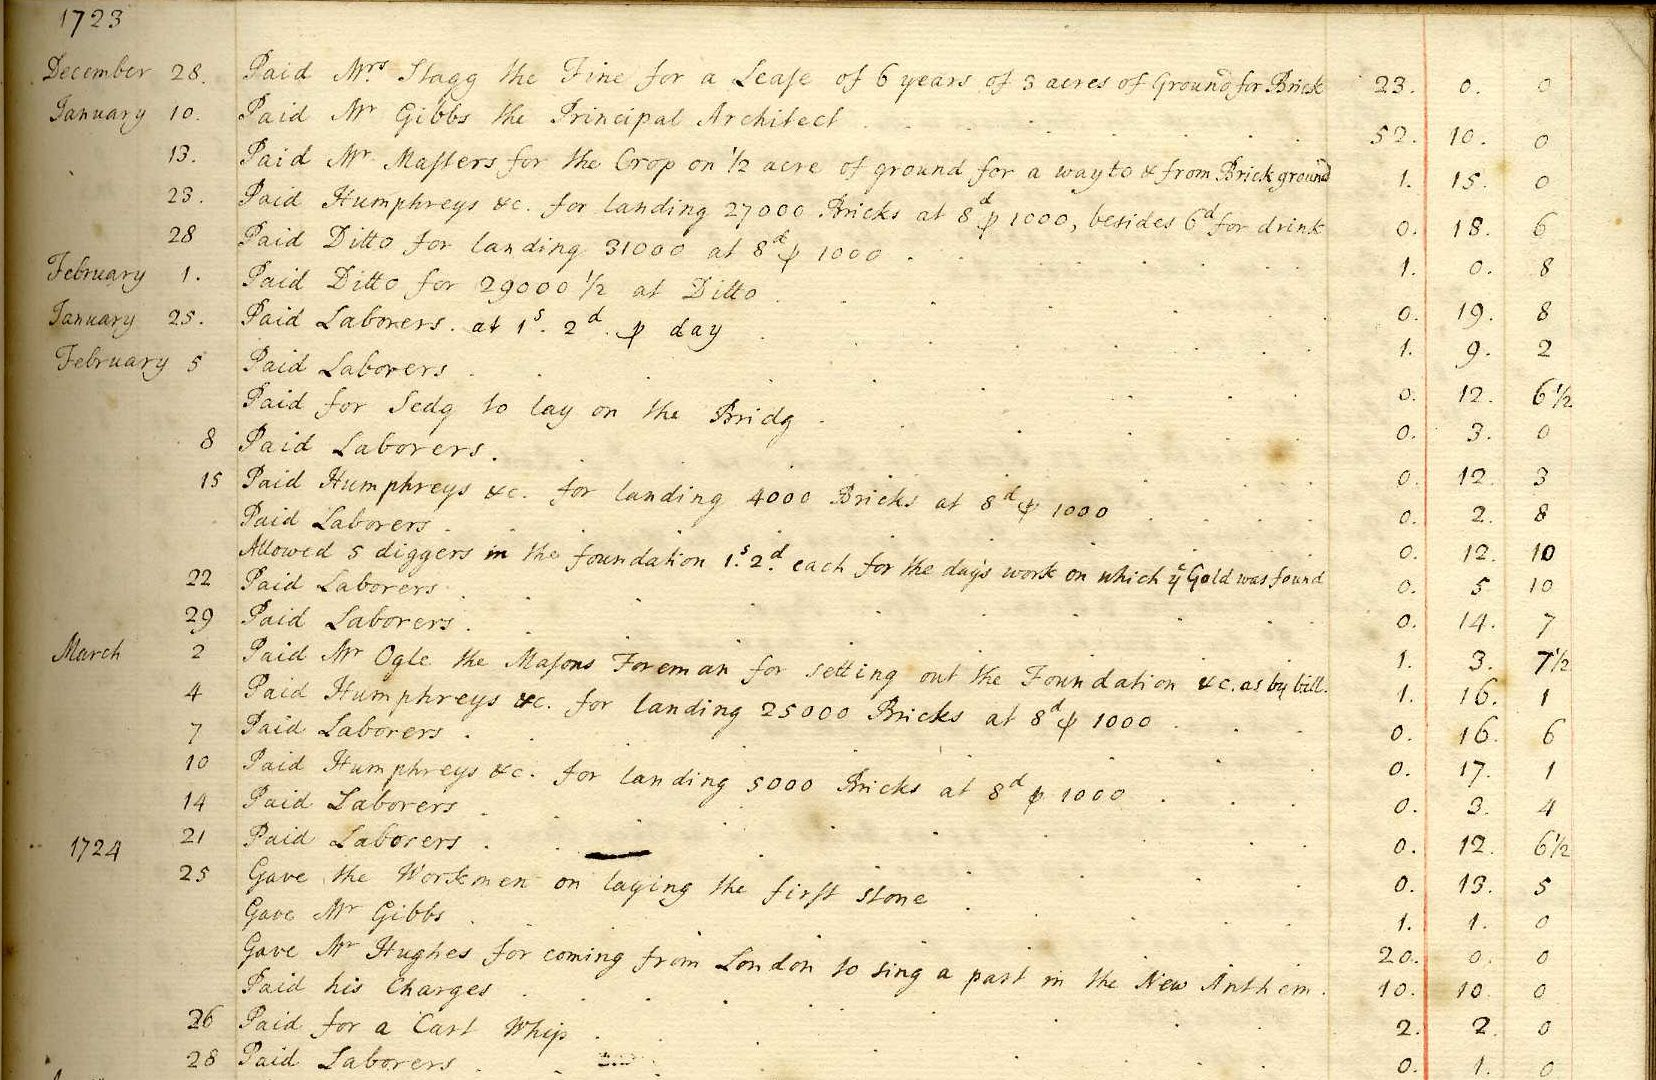 Part of the account of spending on the Gibbs' building. 28 December 1723 – 25 March 1724 shown here. [GIB/6]